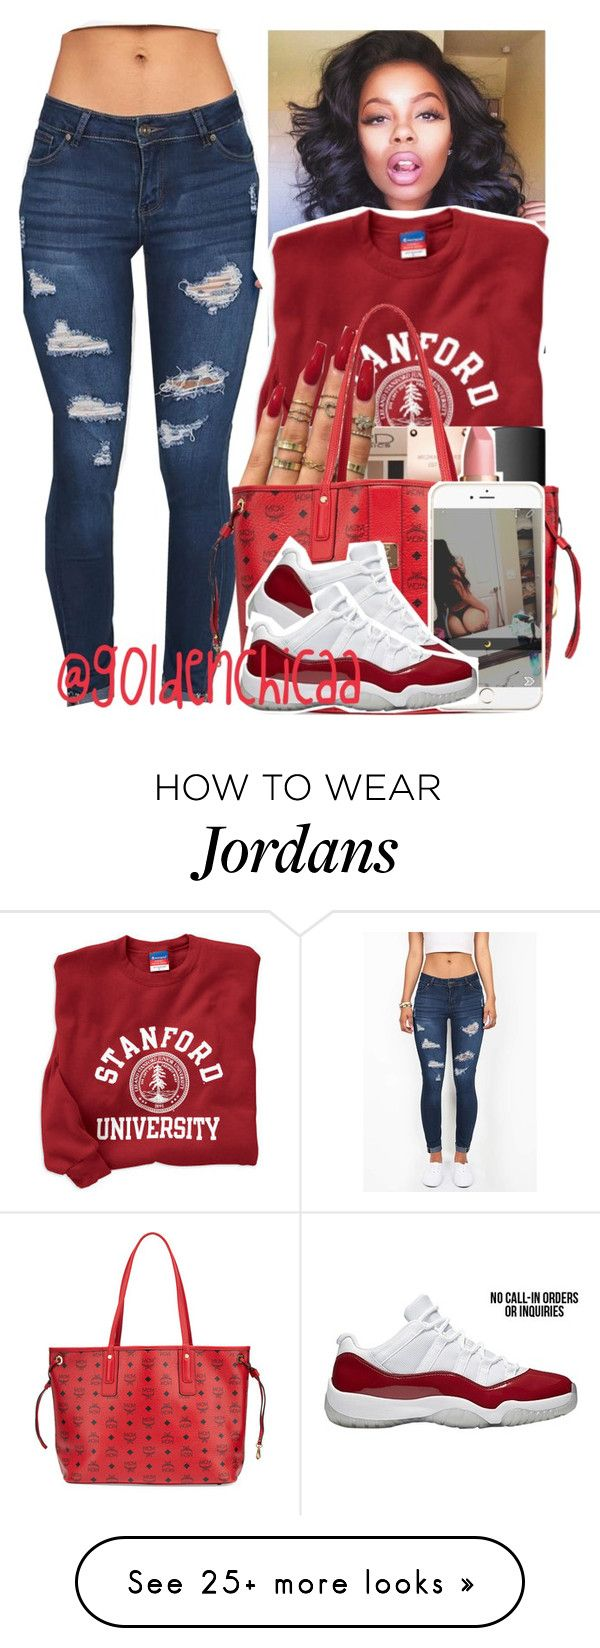 """ I'm selfish "" by g0ldenchicaa on Polyvore featuring MCM"